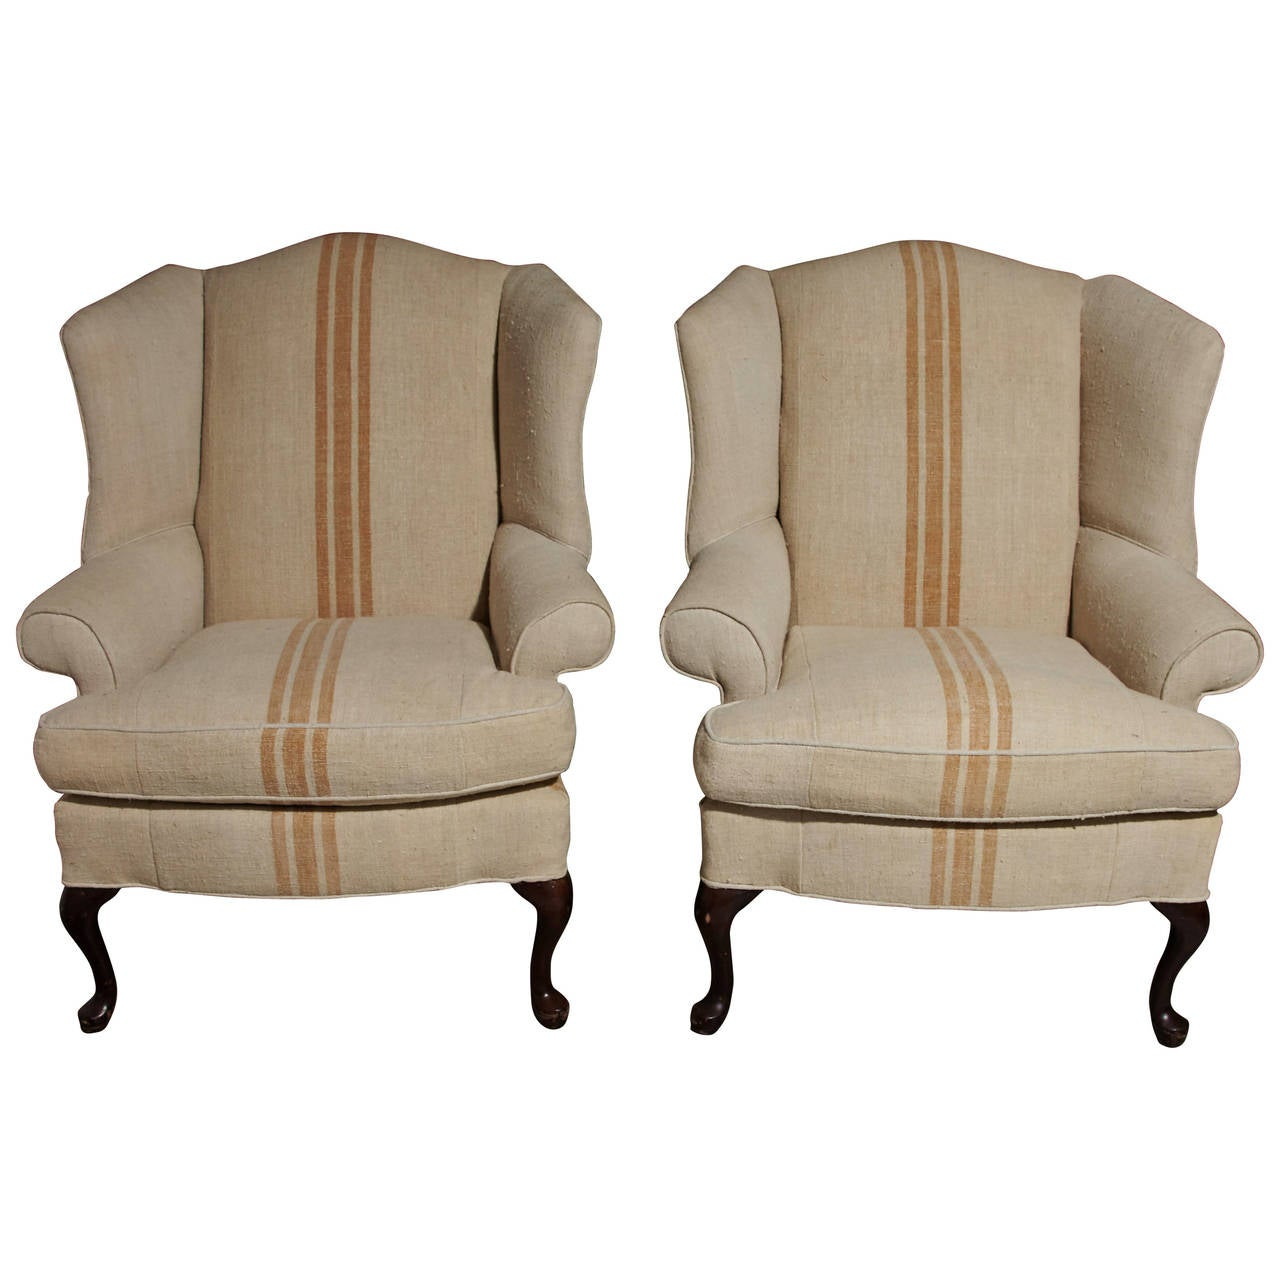 Pair of Queen Anne style Wingback Chairs  sc 1 st  1stDibs & Pair of Queen Anne Style Floral Upholstered Wingback Chairs 20th ...